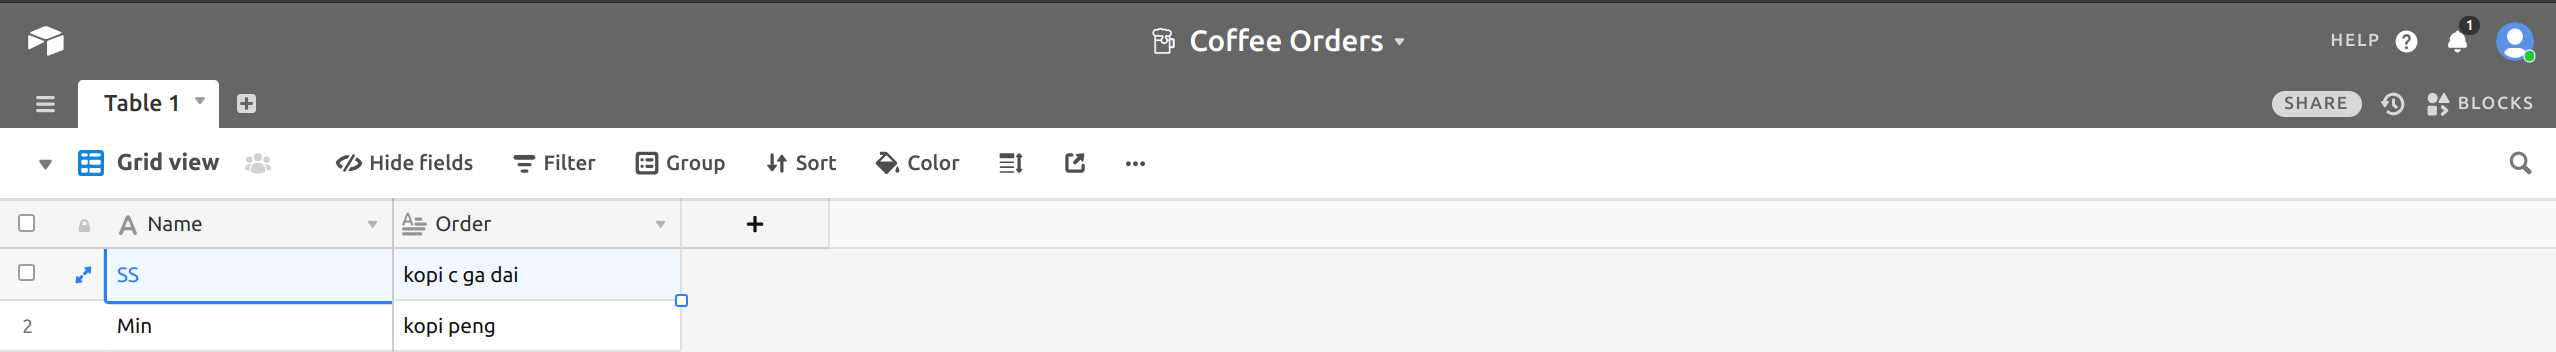 AirTable database for coffee app